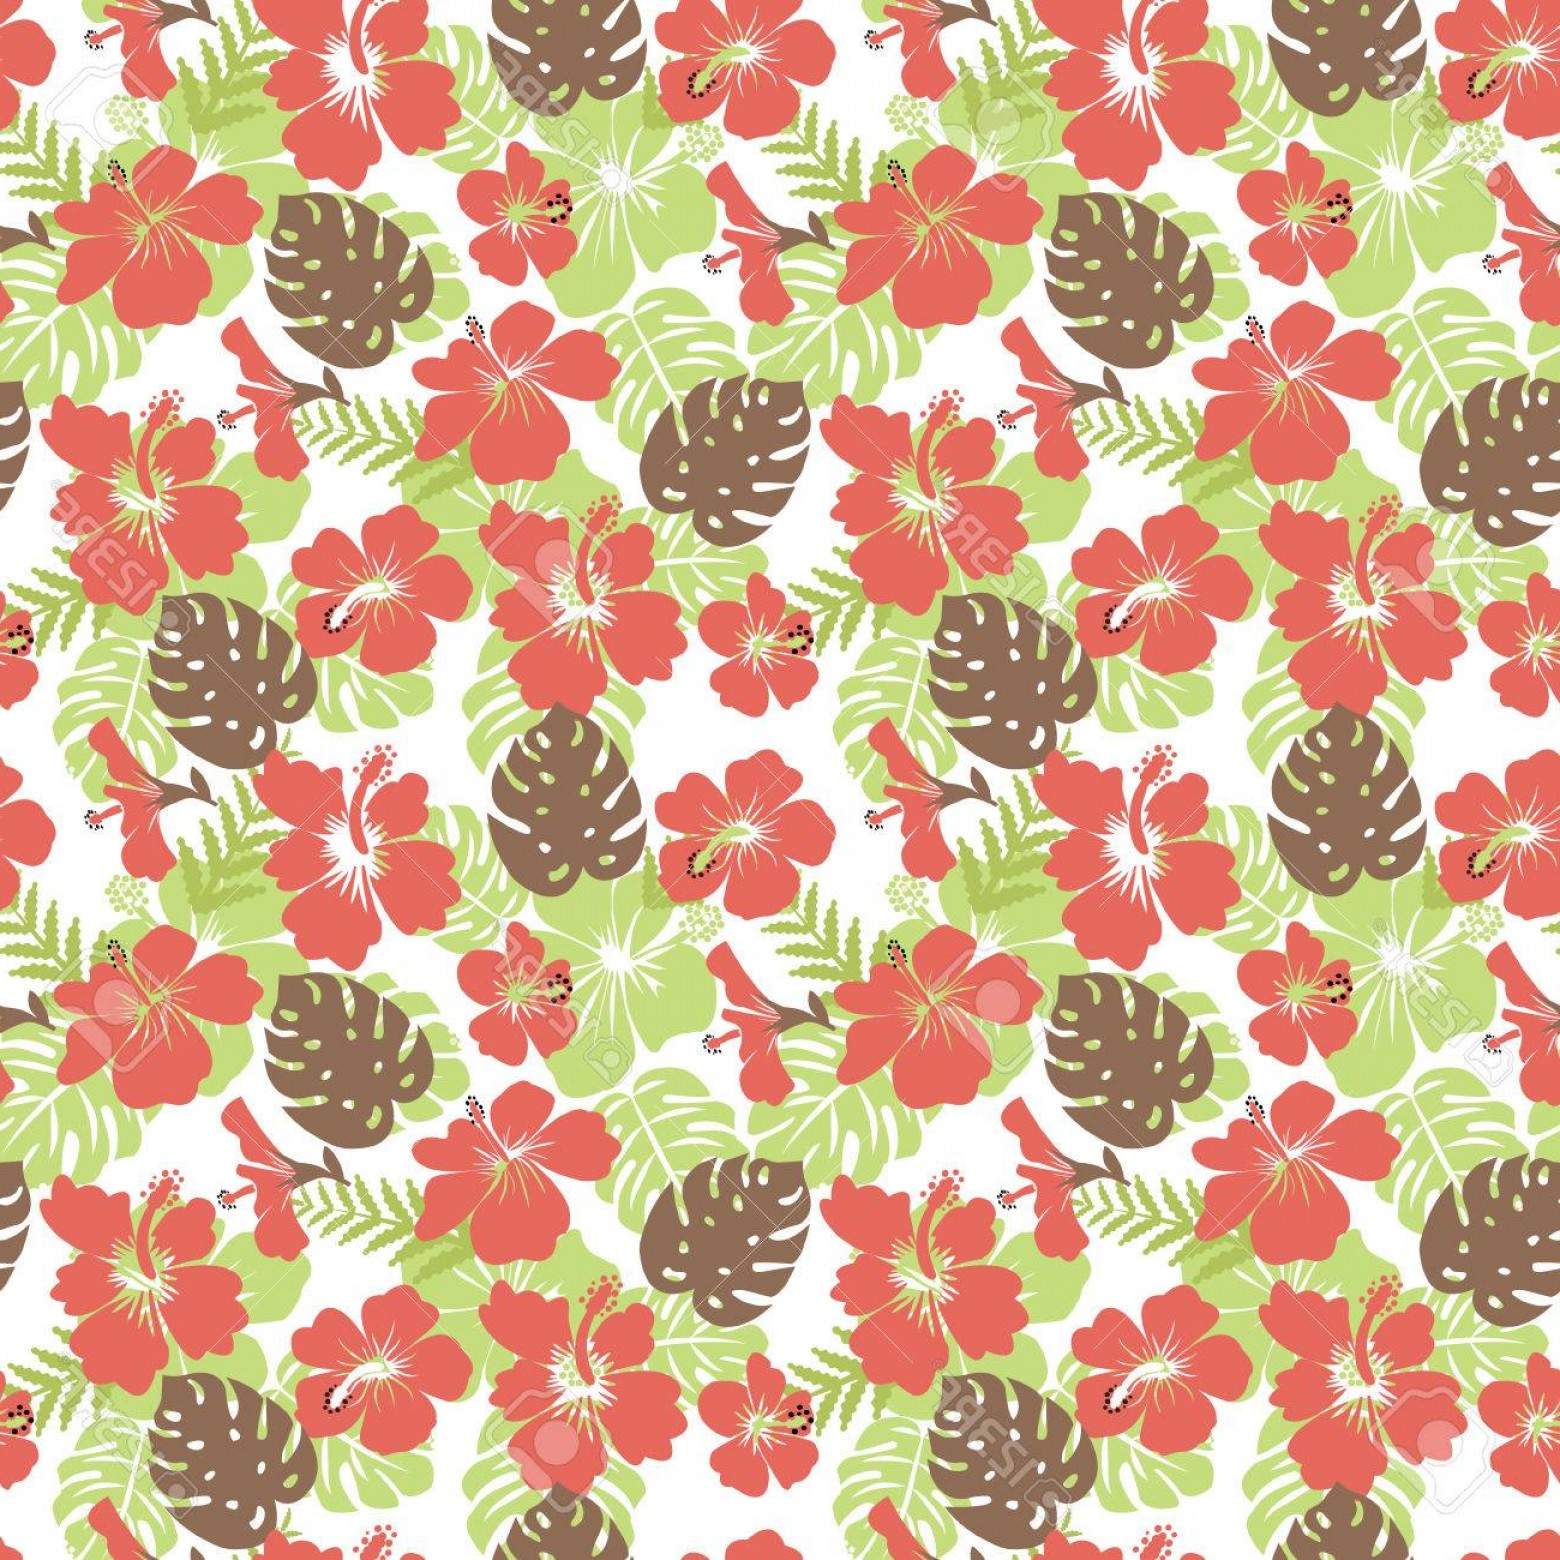 Hawaiian Pattern Vector: Photostock Vector Pattern Of Tropical Leaves And Flowers Hibiscus Flower Hawaii Summer Background Vector Illustration